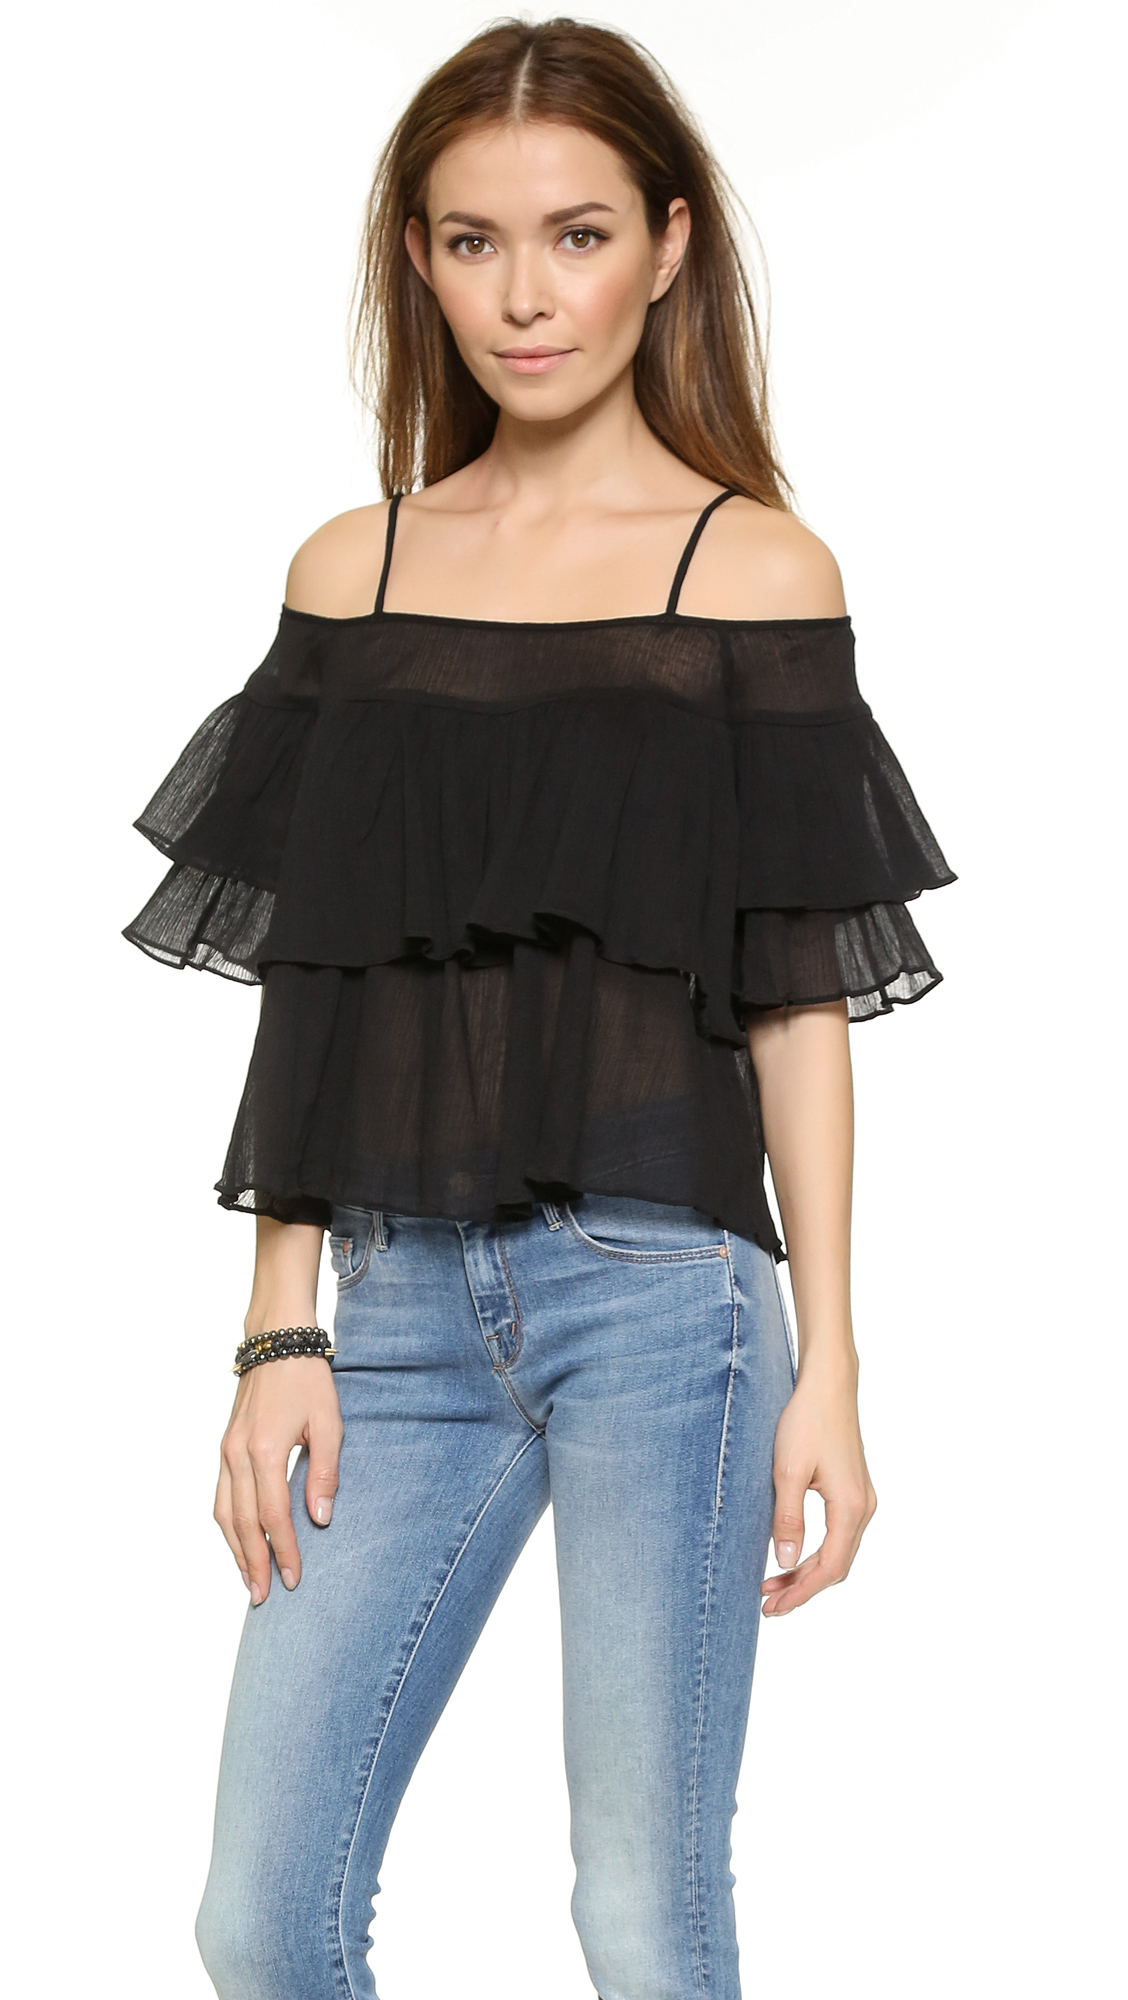 241b46628ad163 Lyst - JOA Tiered Off Shoulder Top - Black in Black